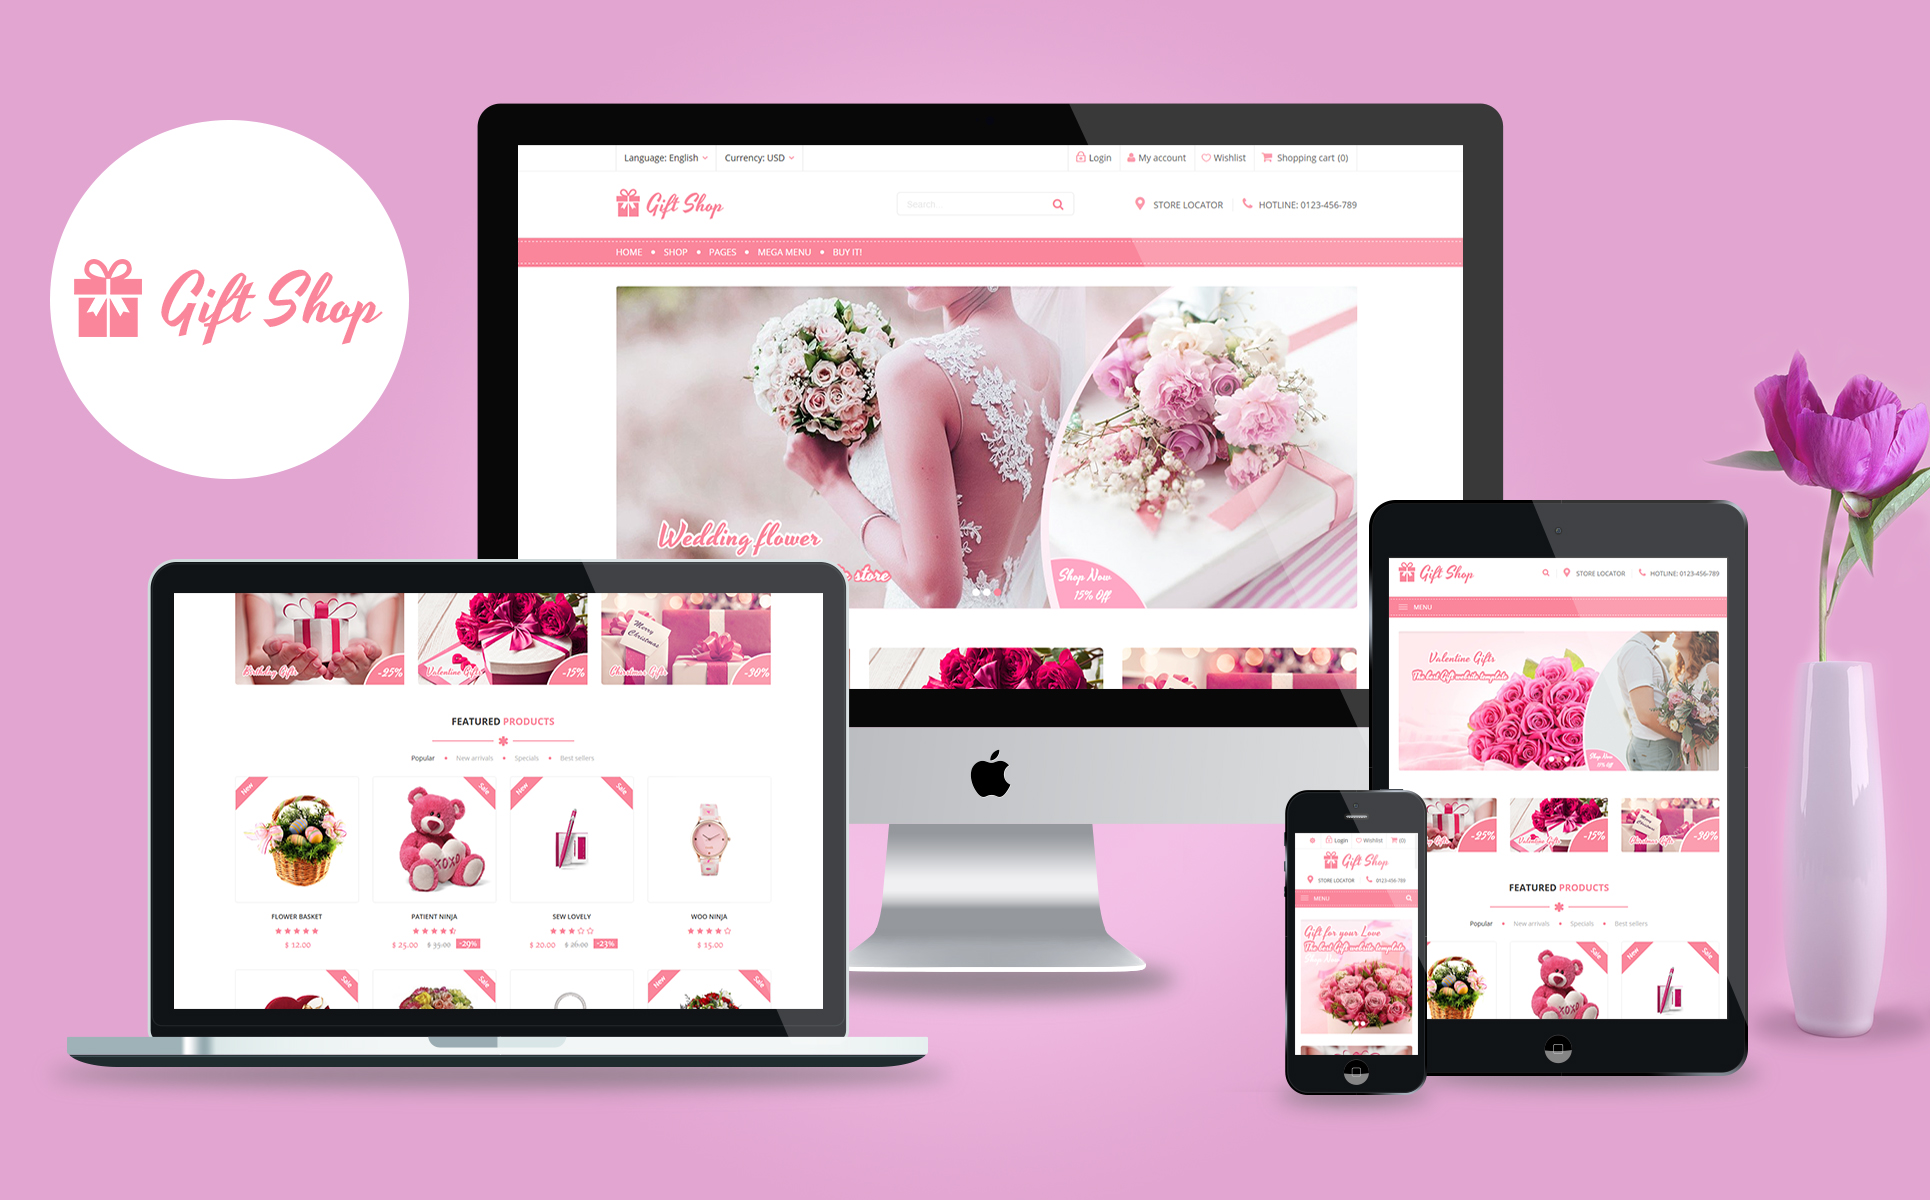 Giftshop - For Gift, Flower, Toy and Accessories stores WooCommerce Theme